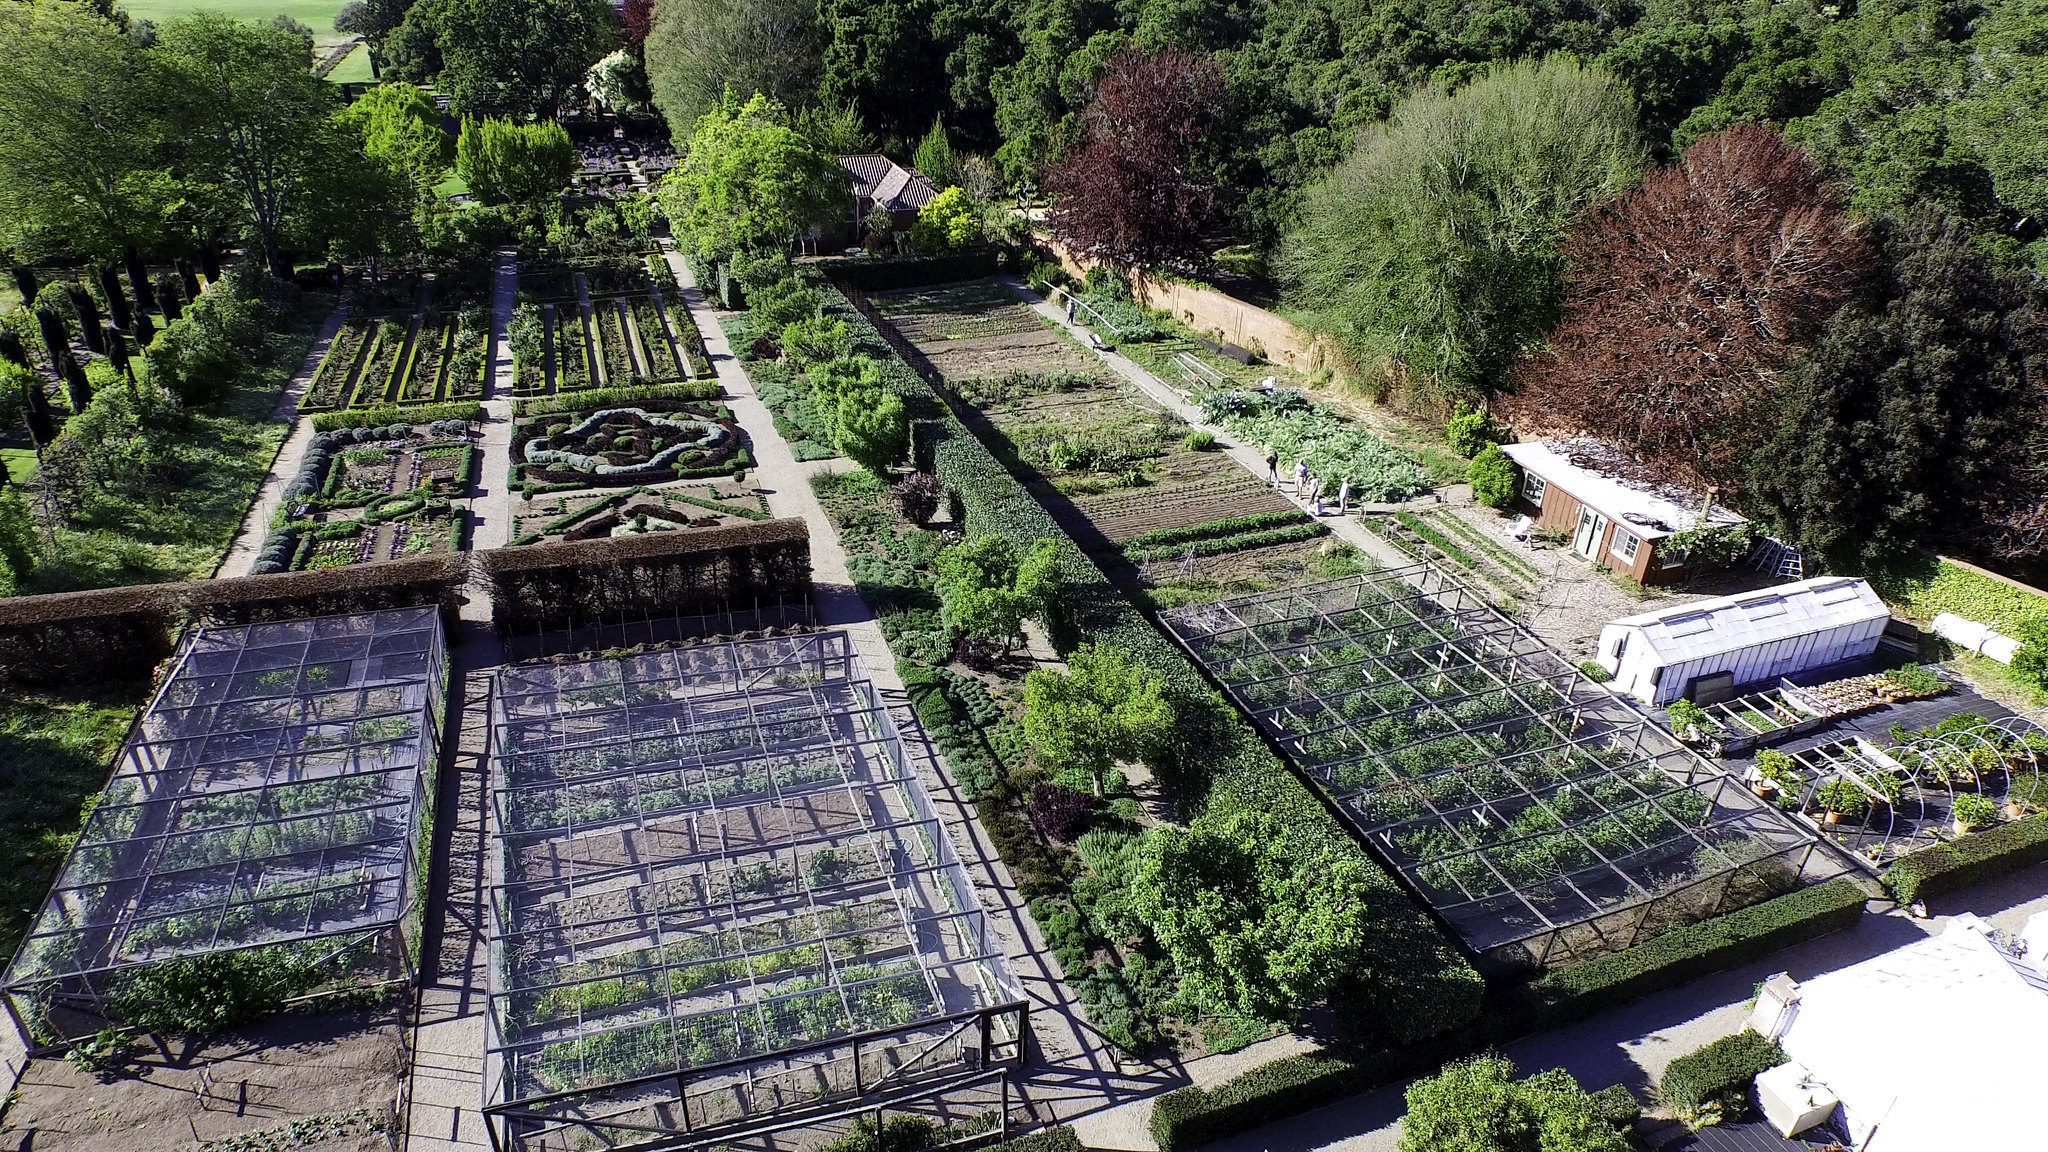 Koptervision image of the Panel Garden and Veggie Garden